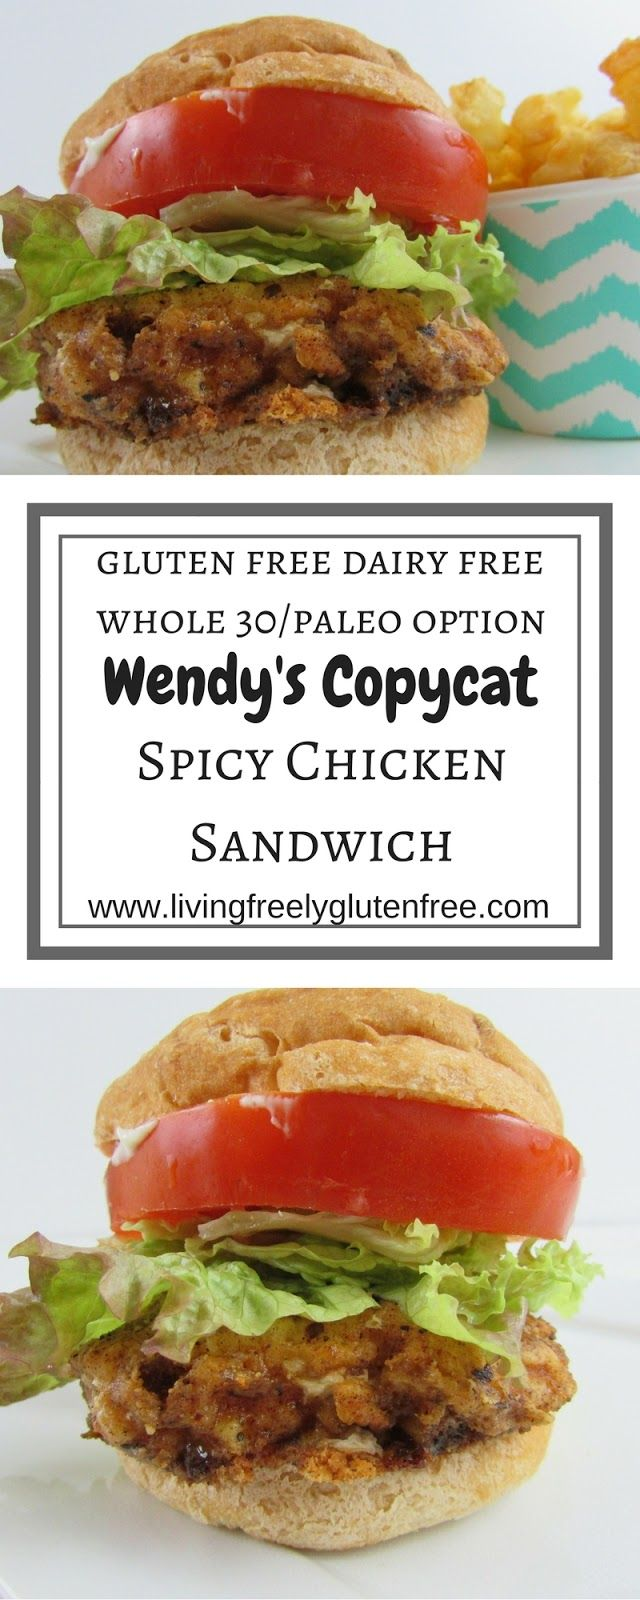 Gluten Free, Dairy Free with a Paleo/Whole 30 Option. Wendy's Copycat Spicy Chicken Sandwich. This delicious spicy chicken sandwich tastes like you remember it. The perfect amount of spicy topped with mayo, lettuce and tomato.